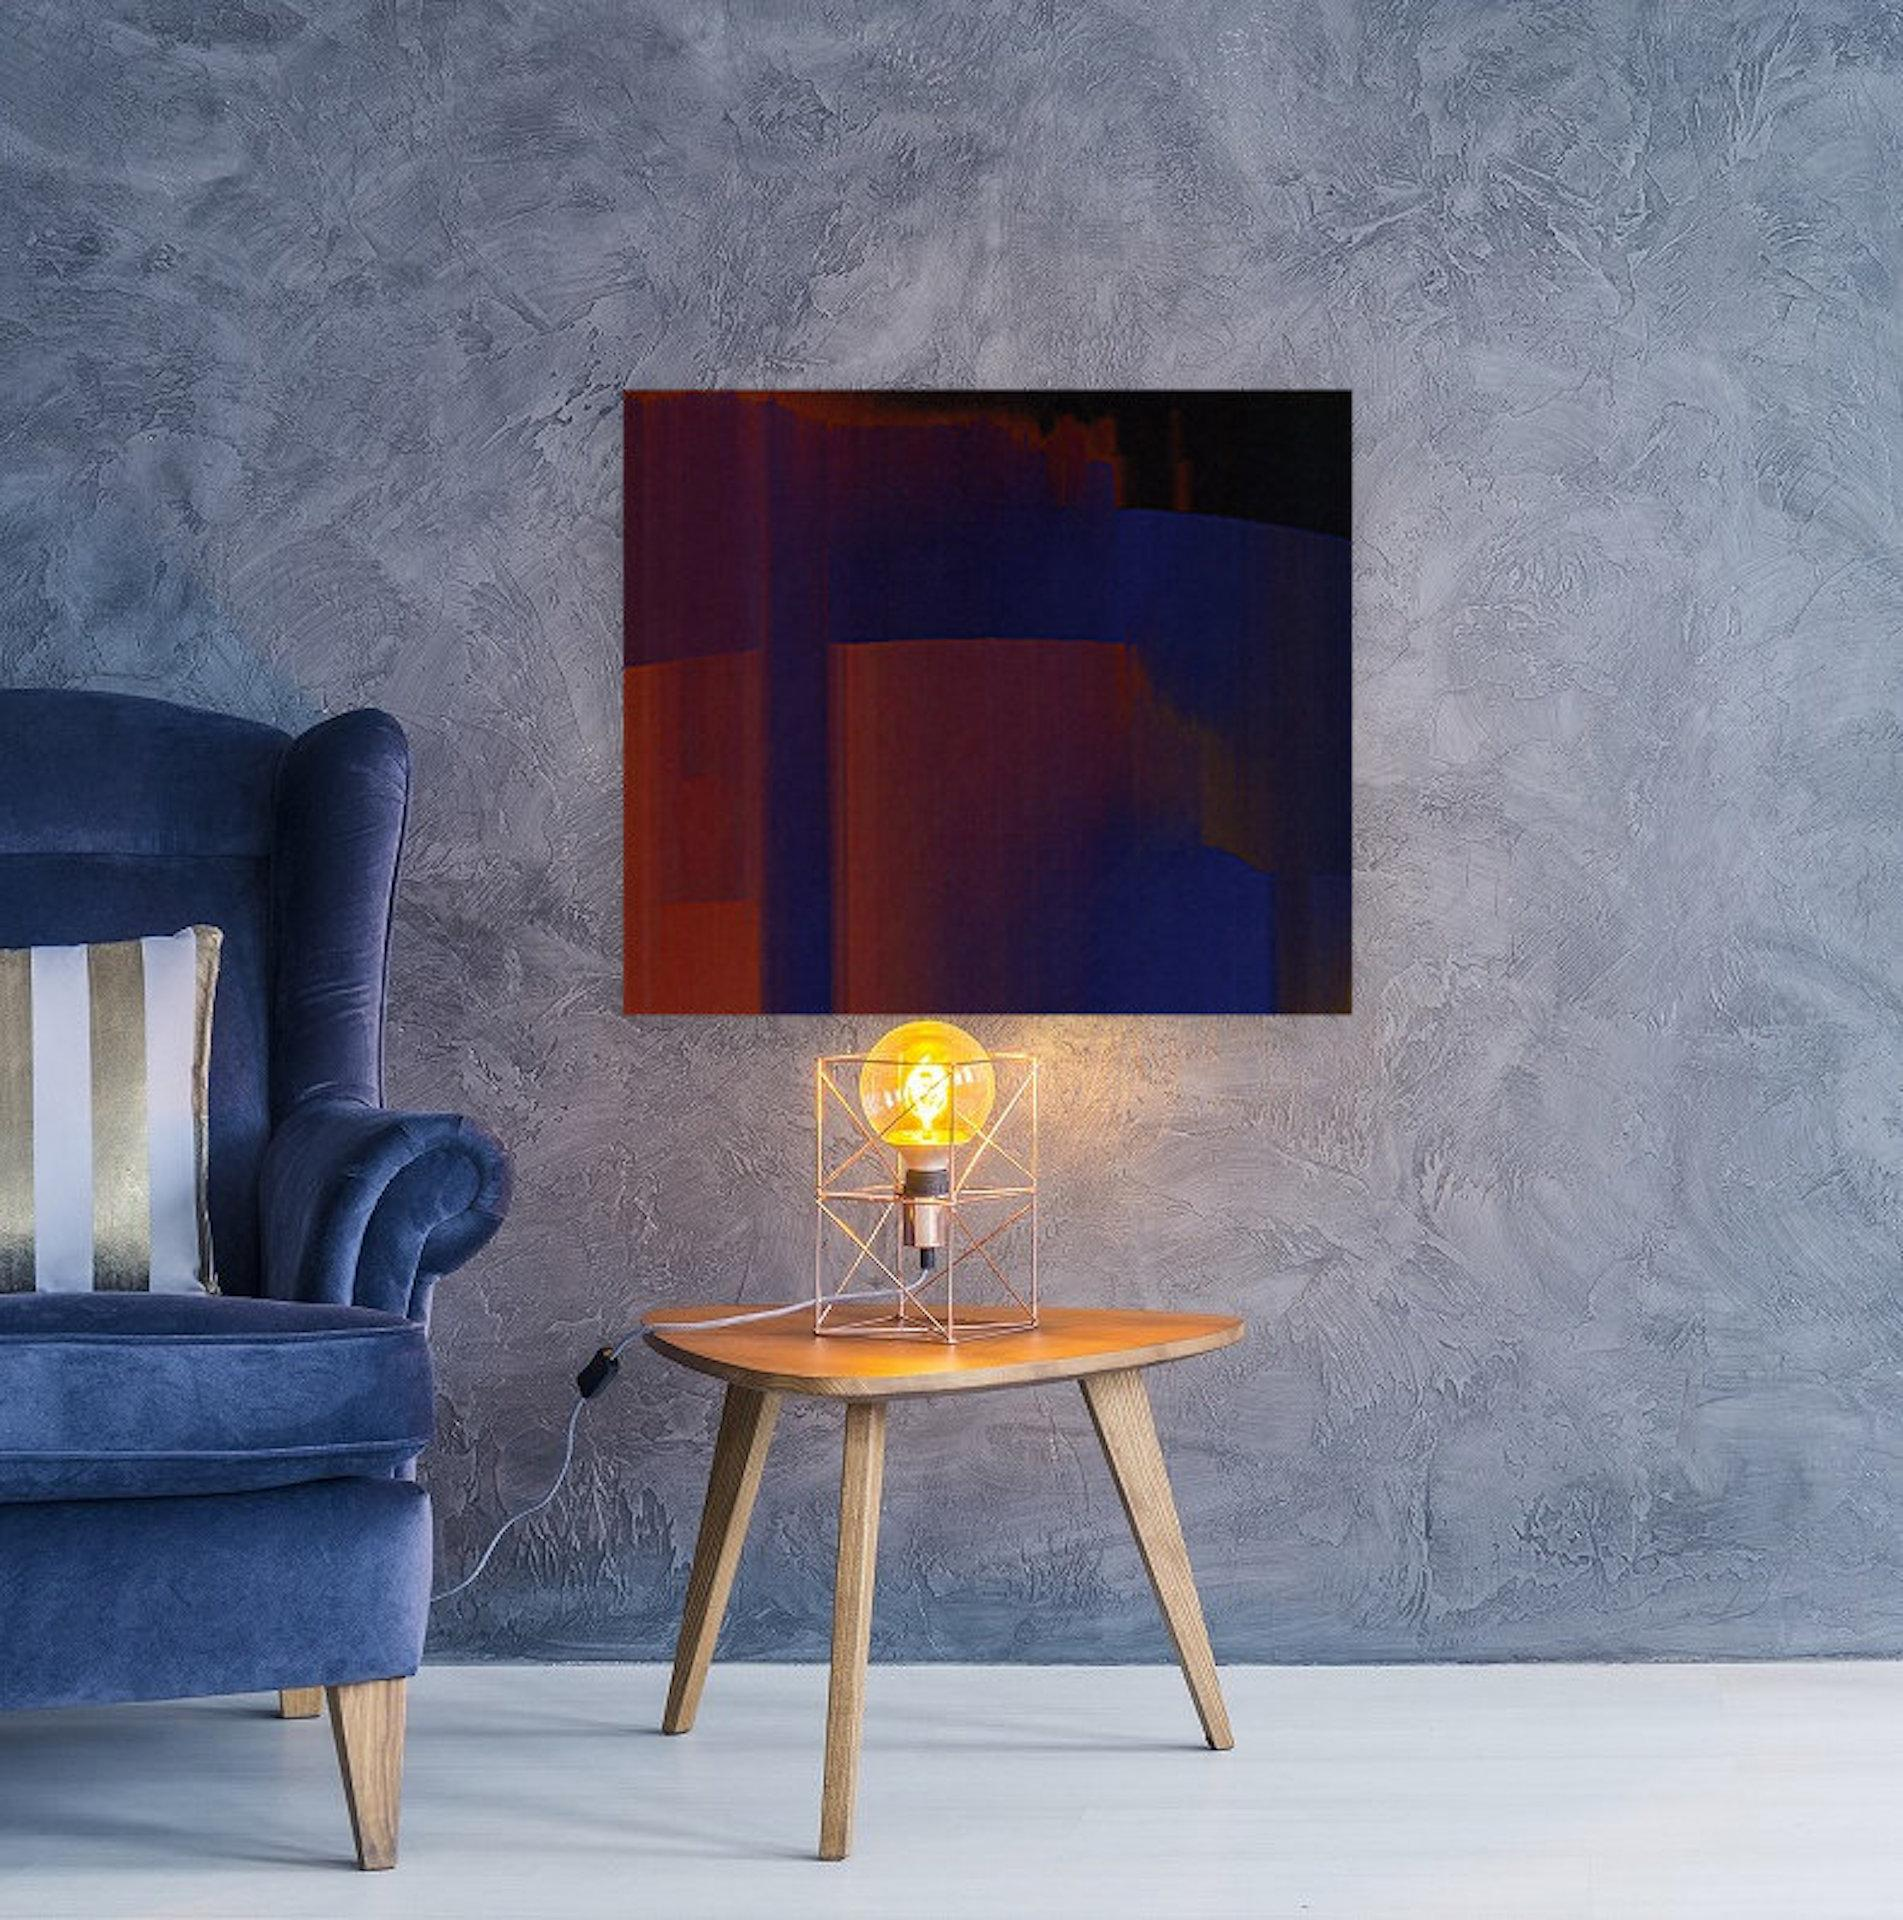 Untitled 1982, Agent X, Bright Art, Contemporary Abstract Art, Neo-Expressionist